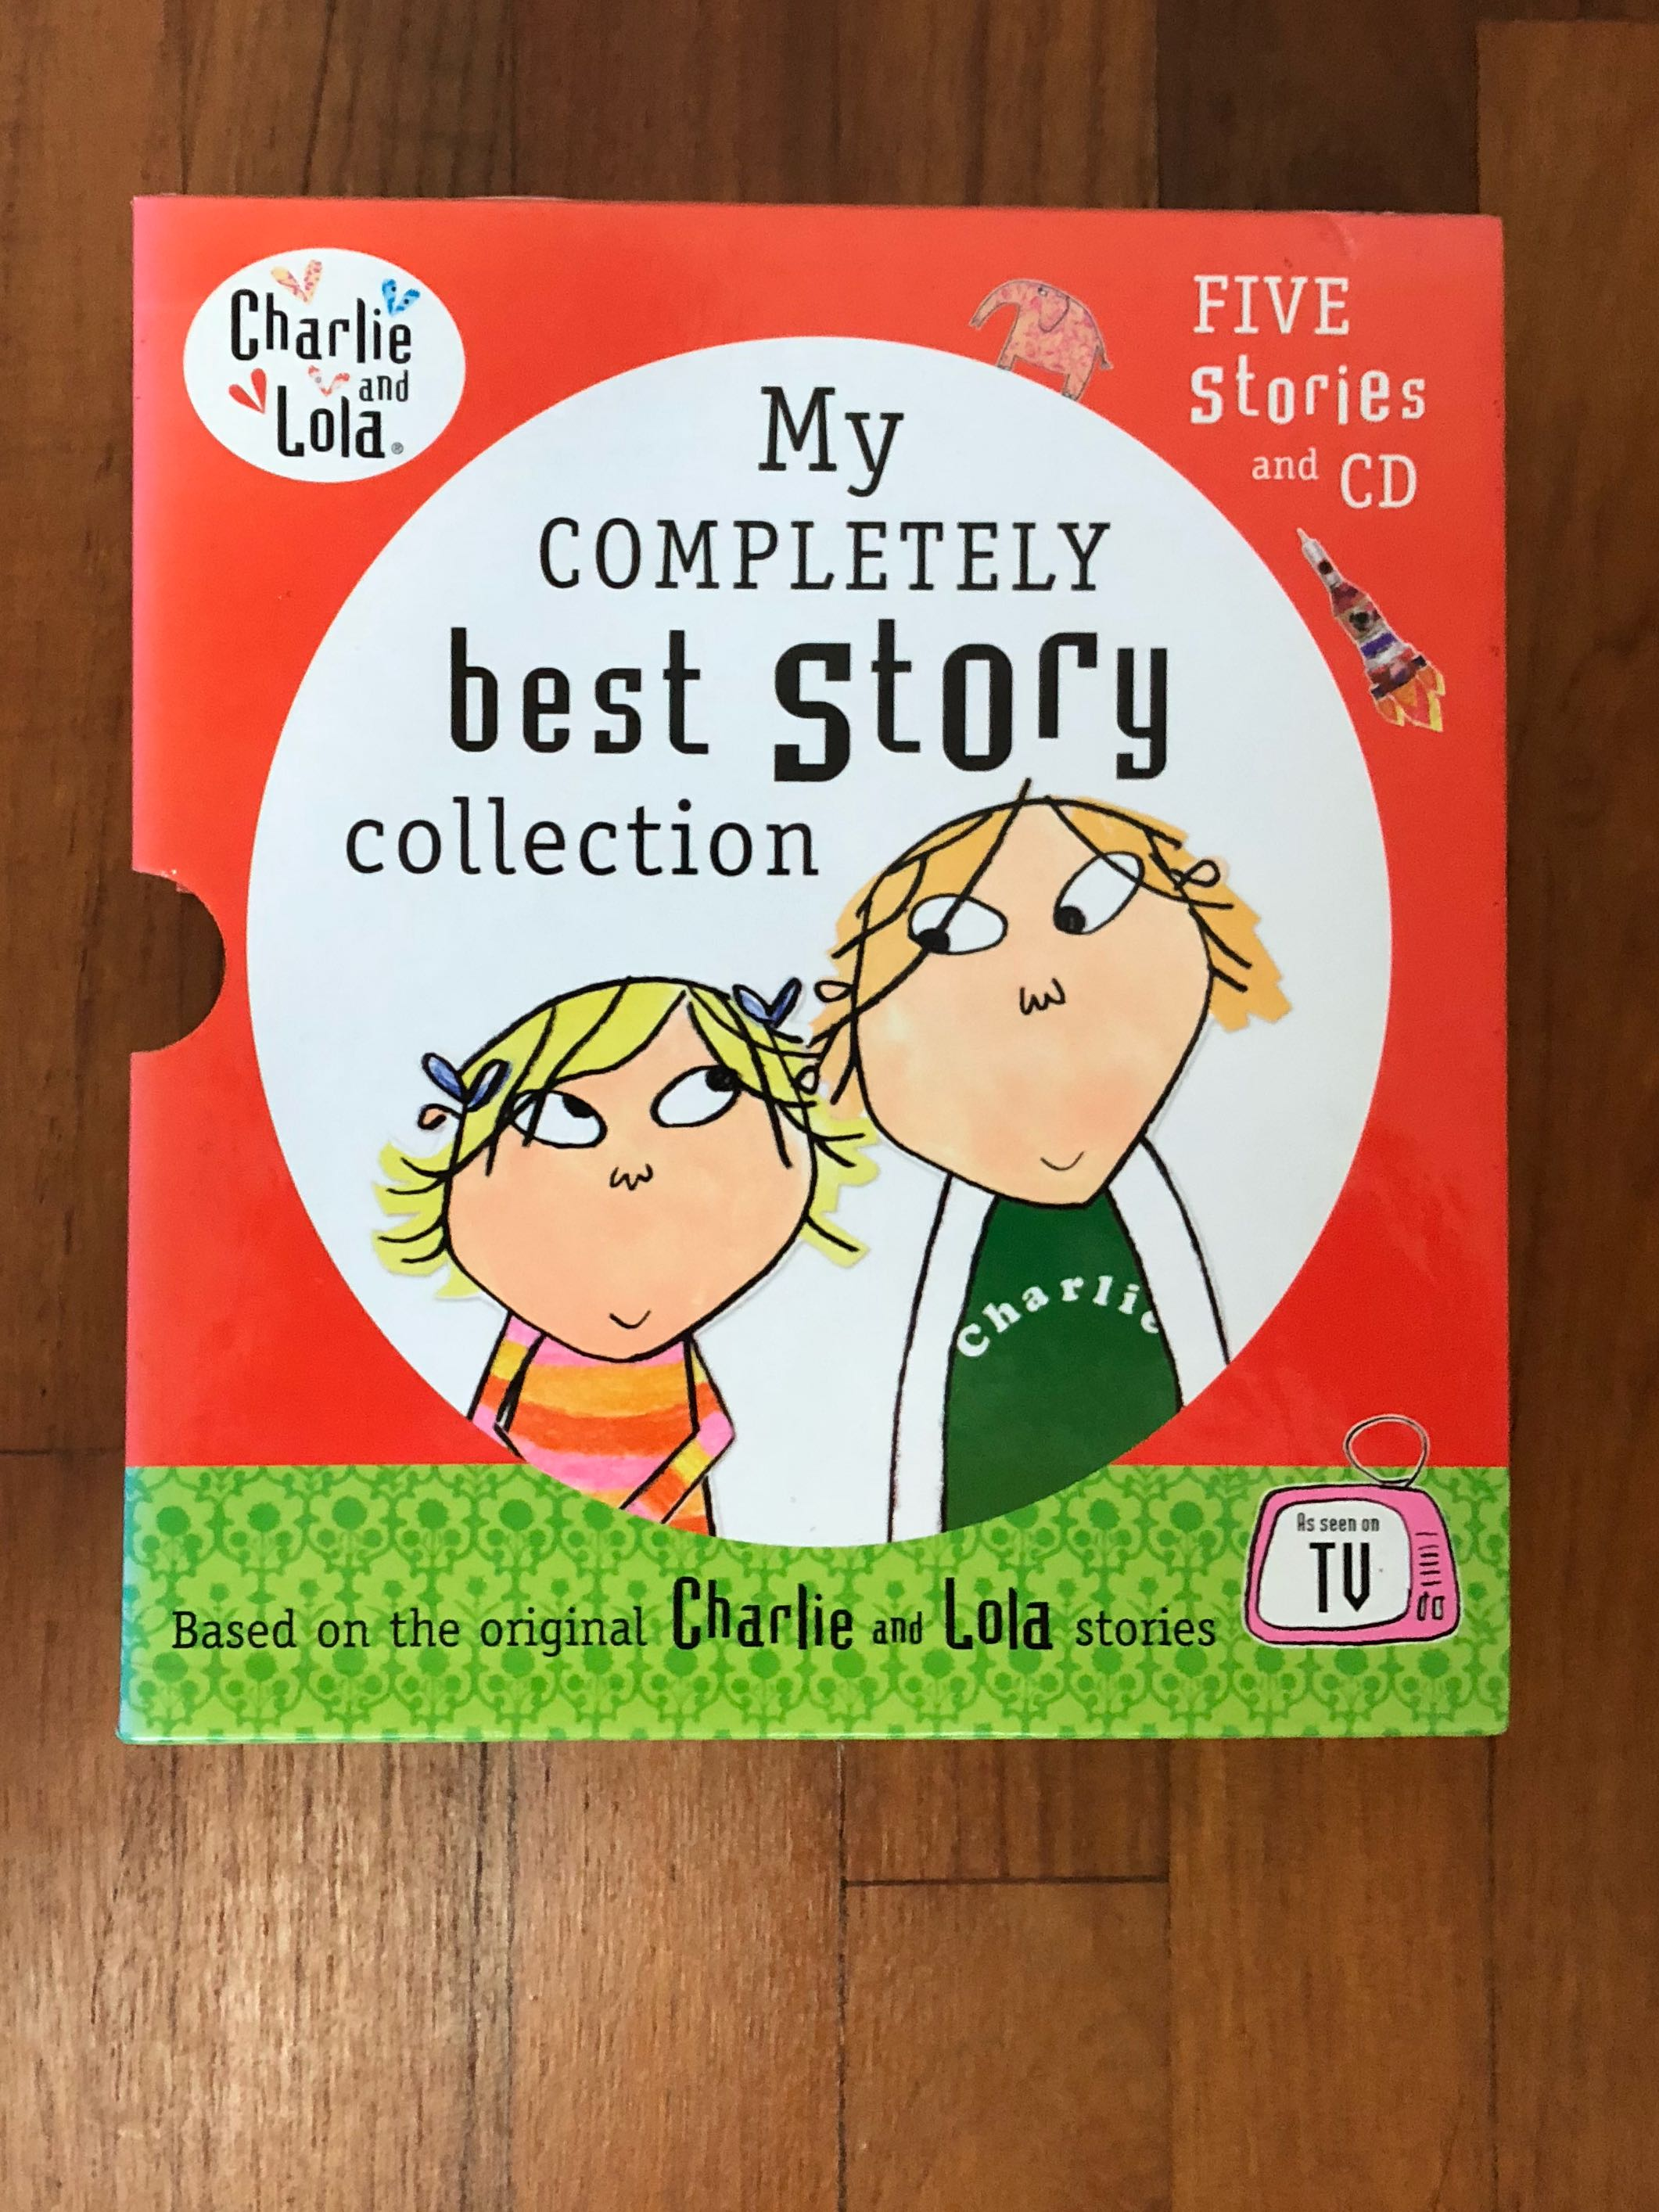 Charlie and Lola: My Completely Best Story Collection (5 Stories and CD)